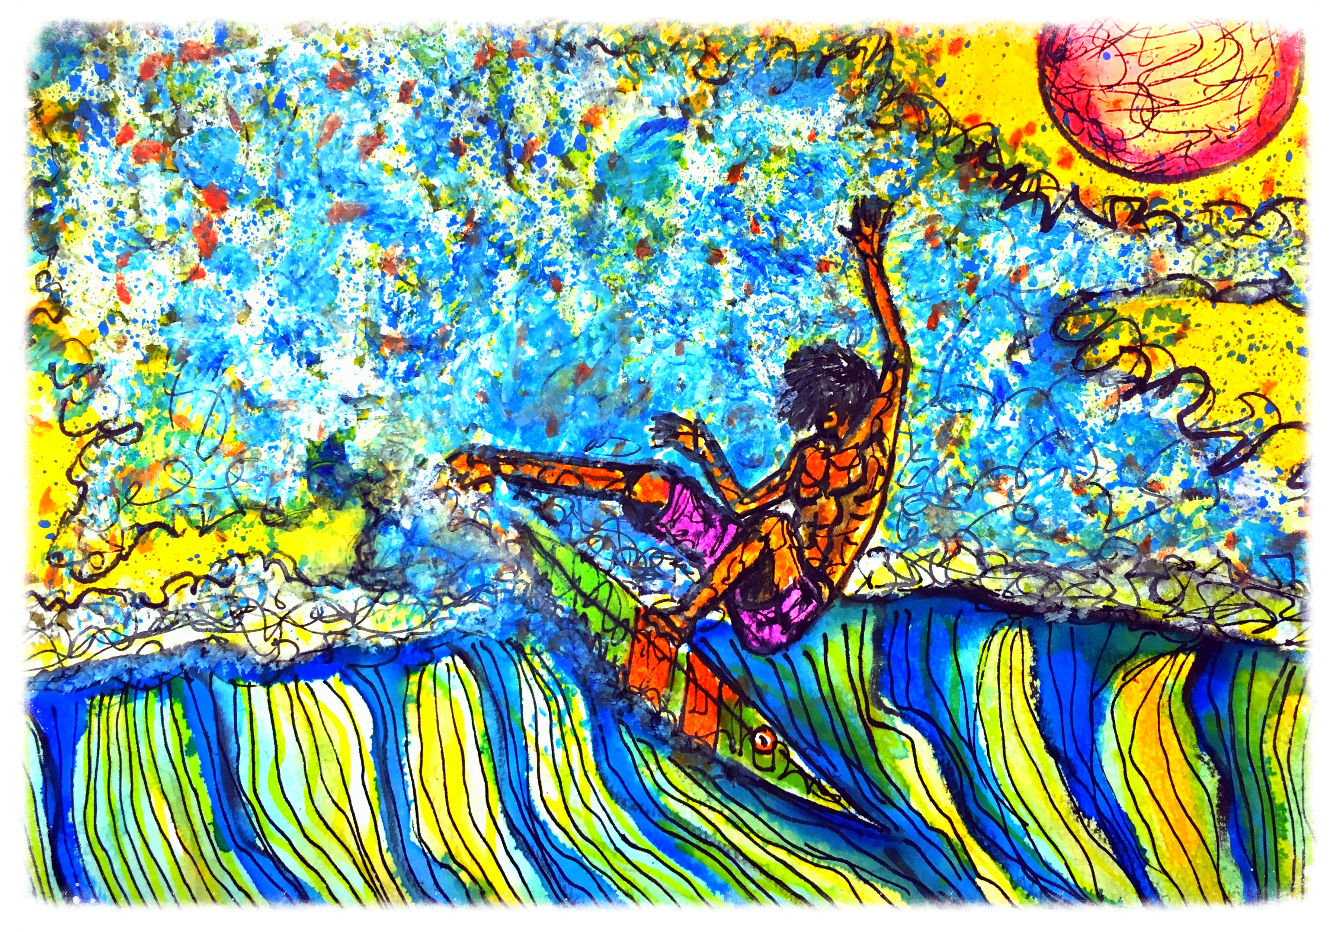 Surf Art by Brent February #14